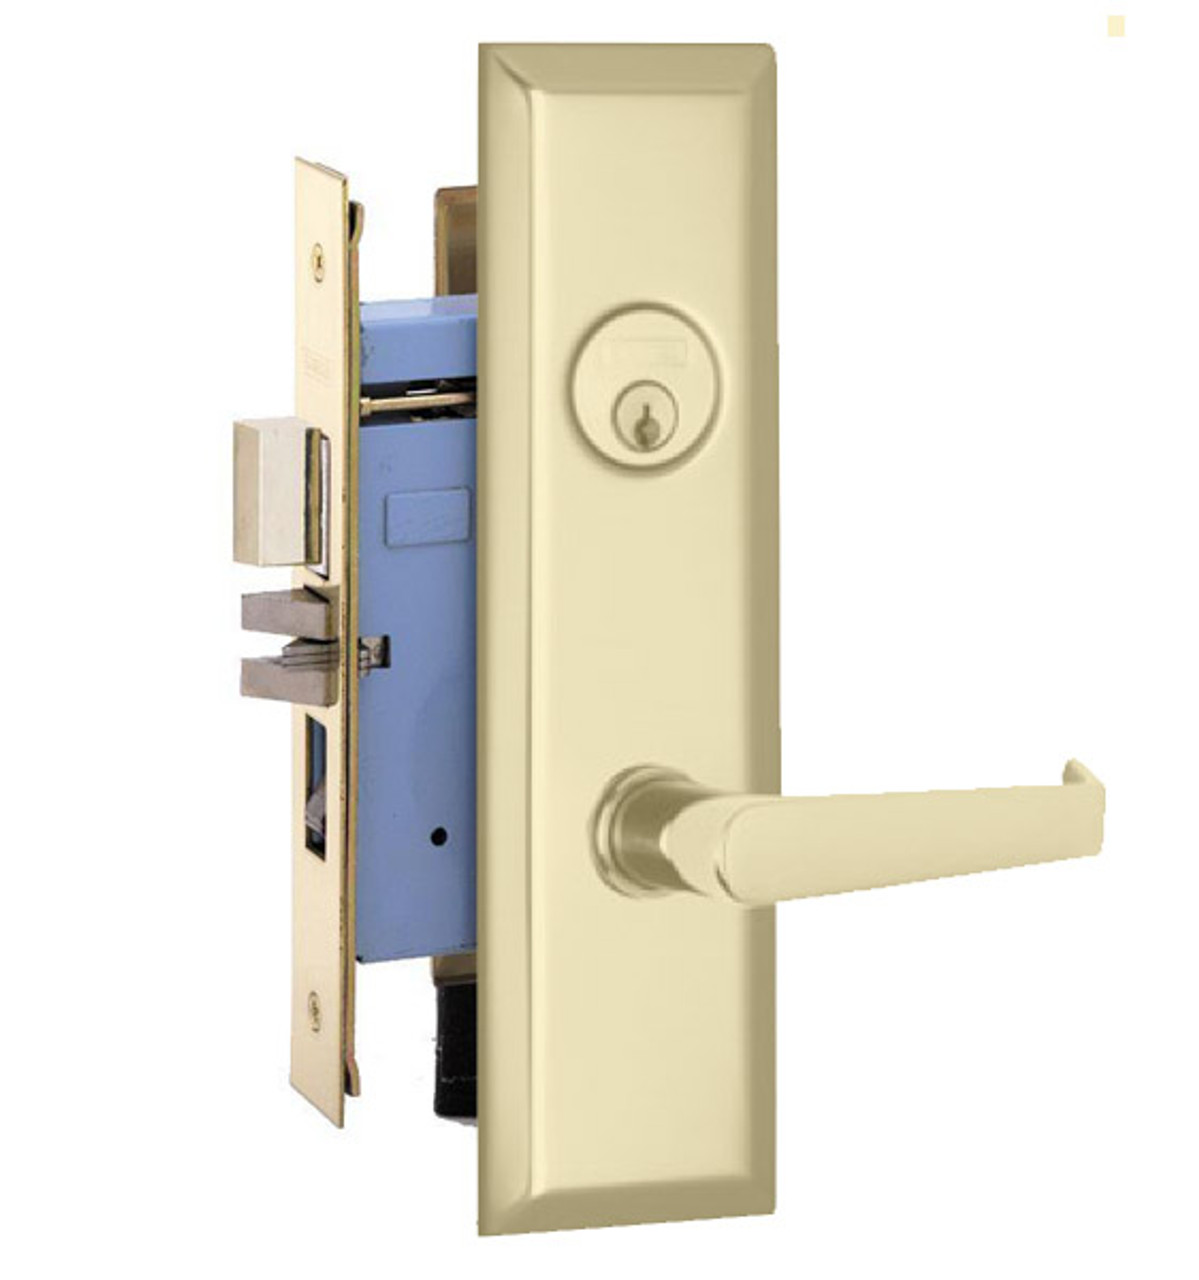 Marks Lock 9NY92 New Yorker Lever Plate Design For Apartment Entrance and Vestibule Door  sc 1 st  ED Locks u0026 Security & Marks Lock 9NY92 New Yorker Lever Plate Design For Apartment ...